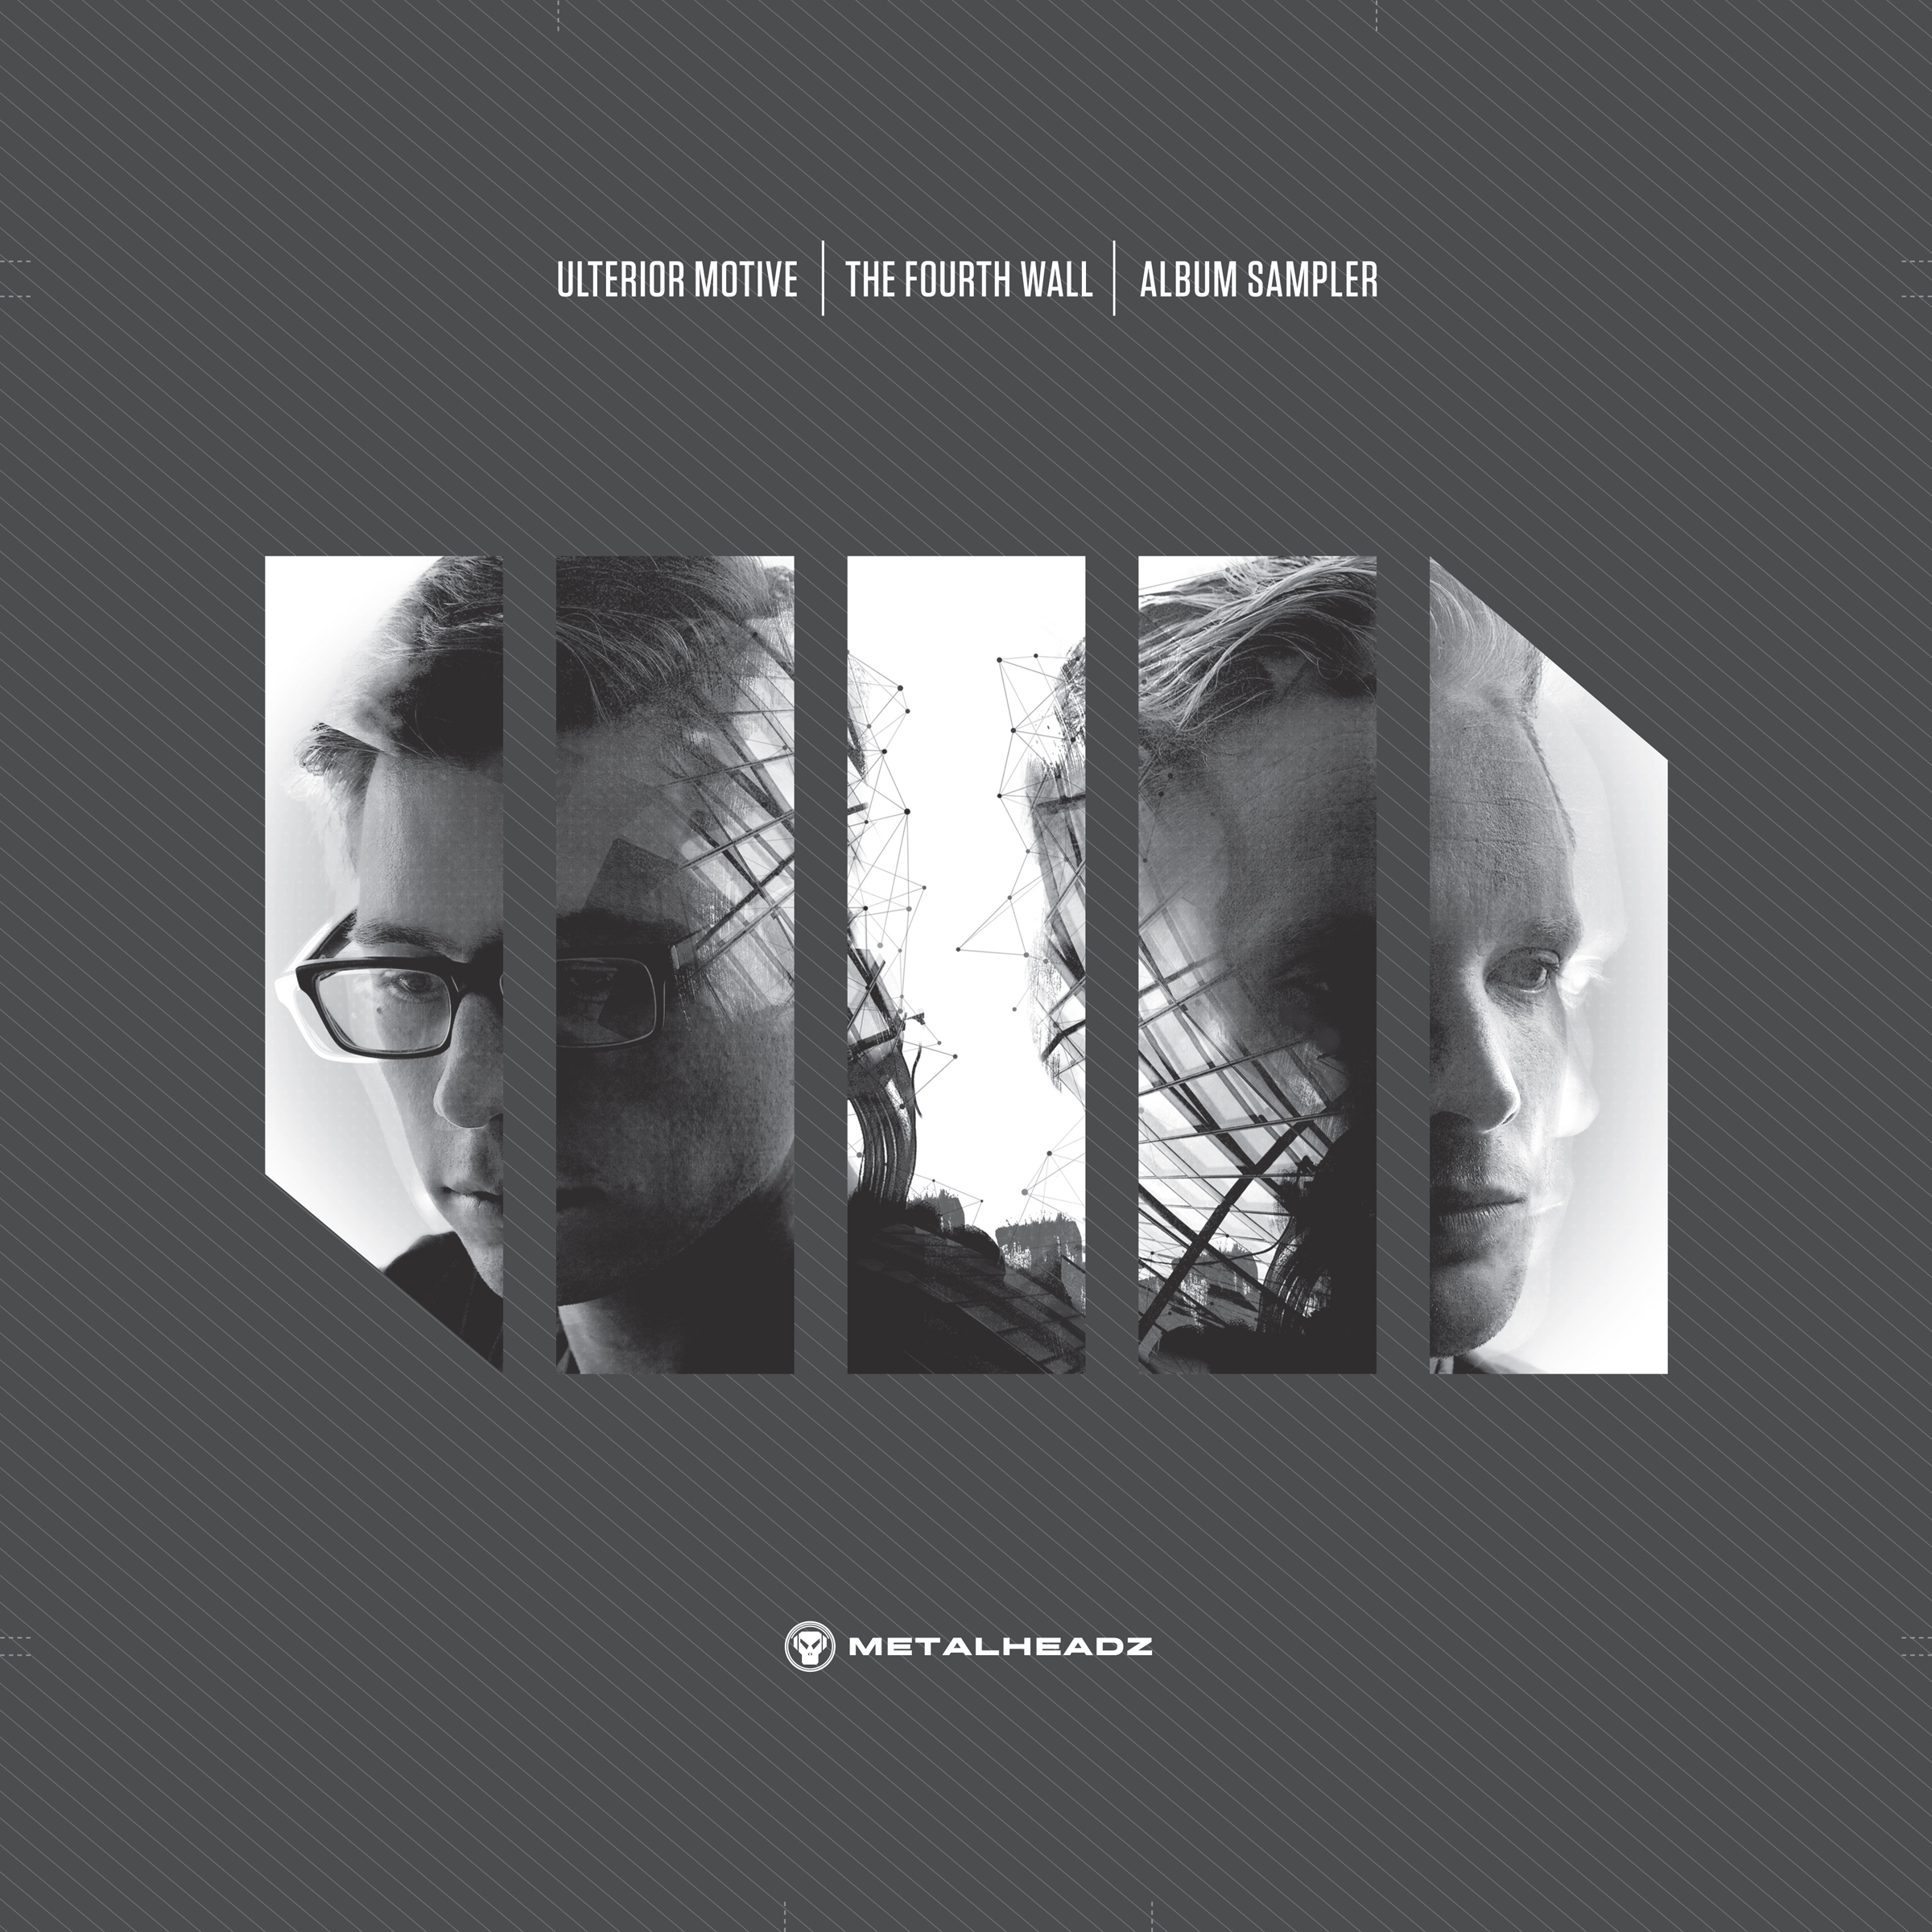 Ulterior Motive/THE FOURTH WALL 3LP